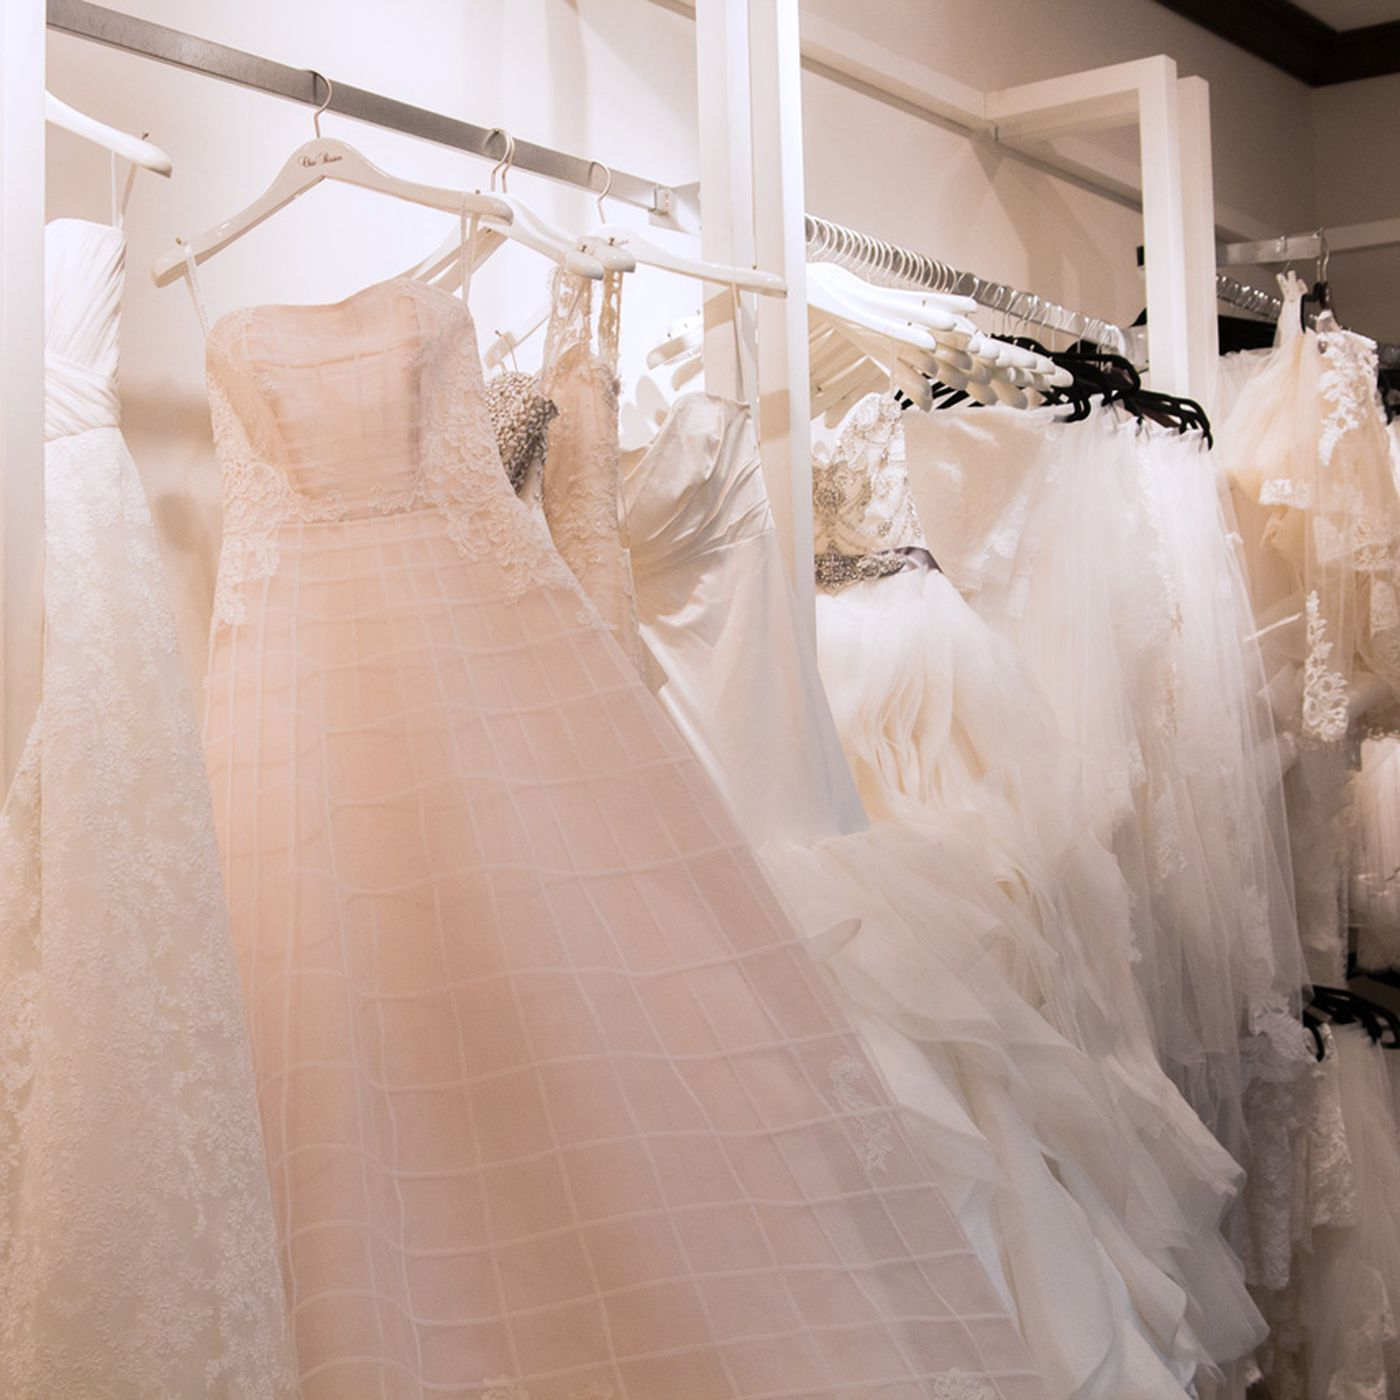 Miami's 20 Best Bridal Stores for Wedding Dresses and Accessories ...